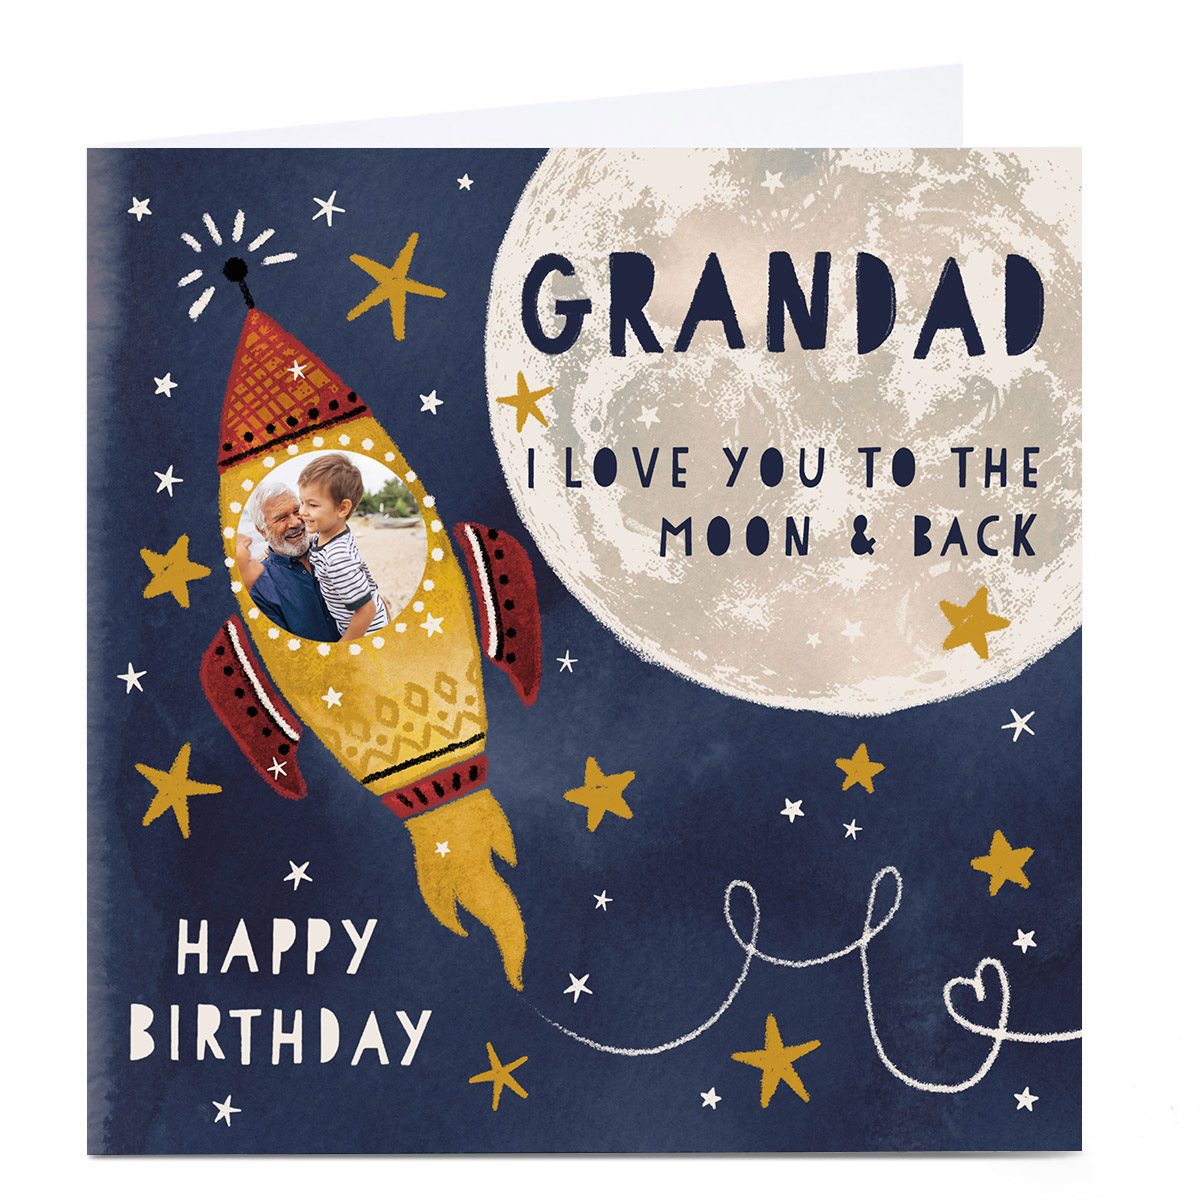 Photo Kerry Spurling Birthday Card - Moon & Back, Grandad